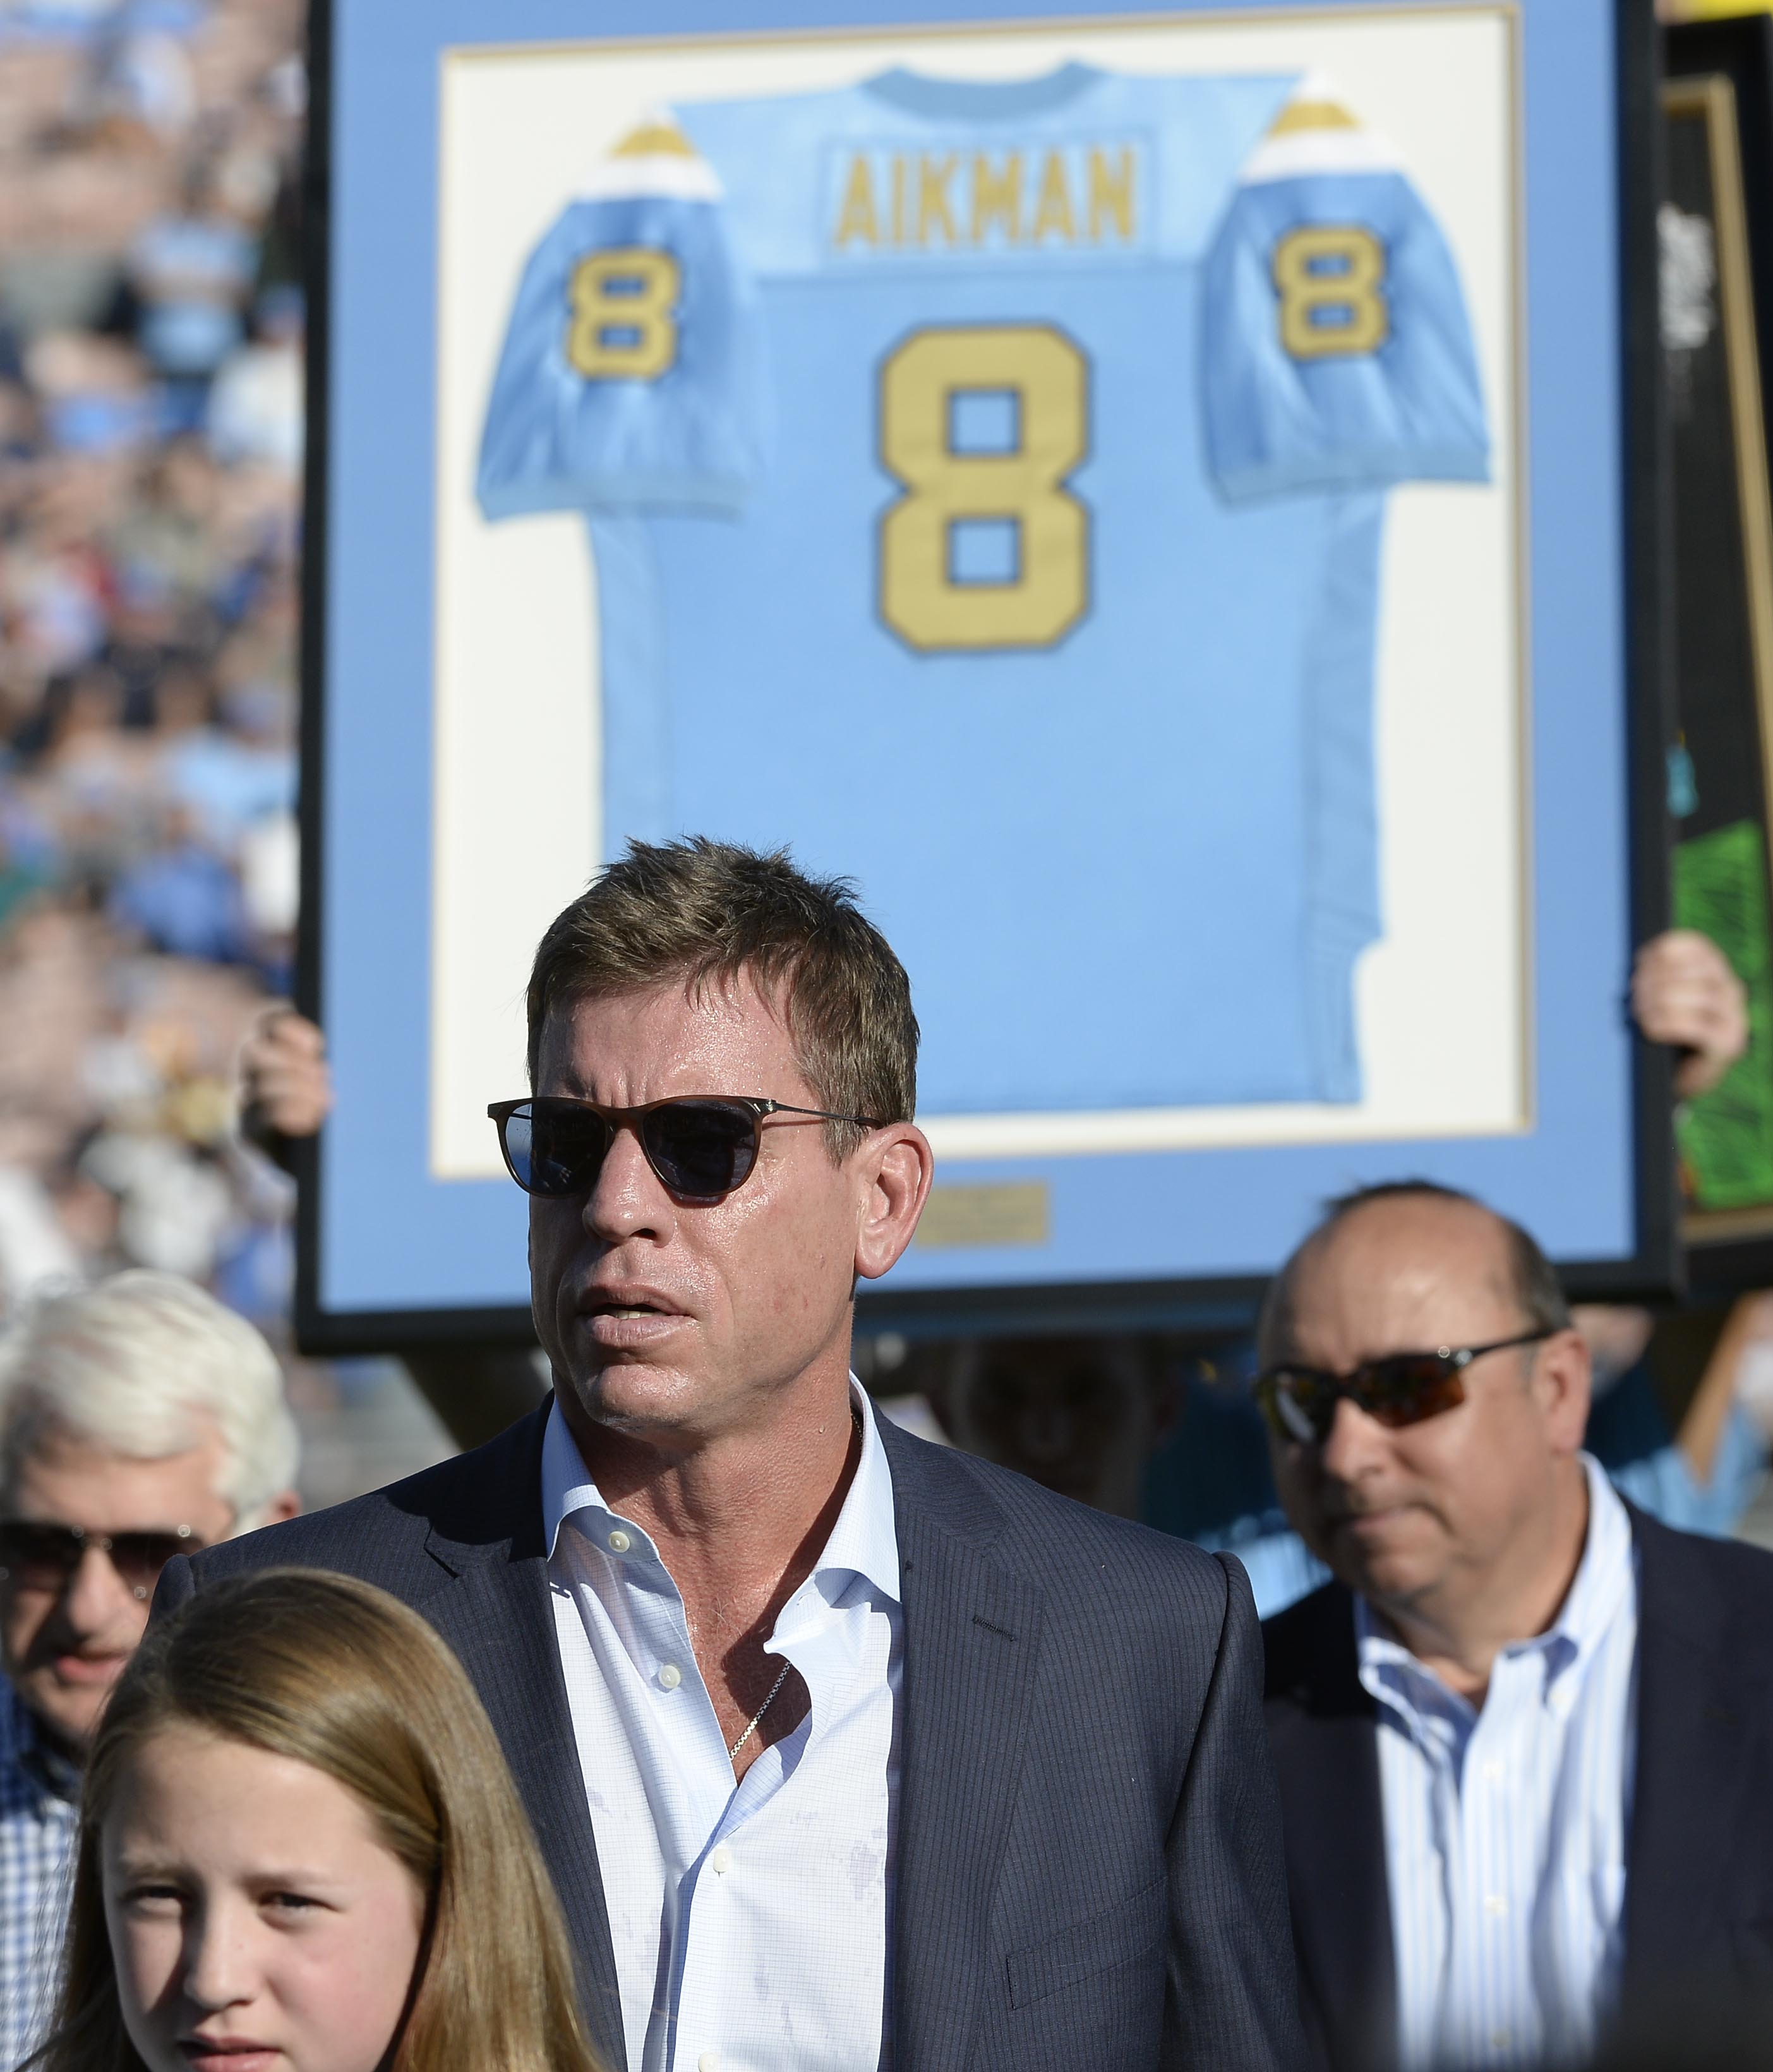 At UCLA's last game, they ruined Troy Aikman's jersey retirement.